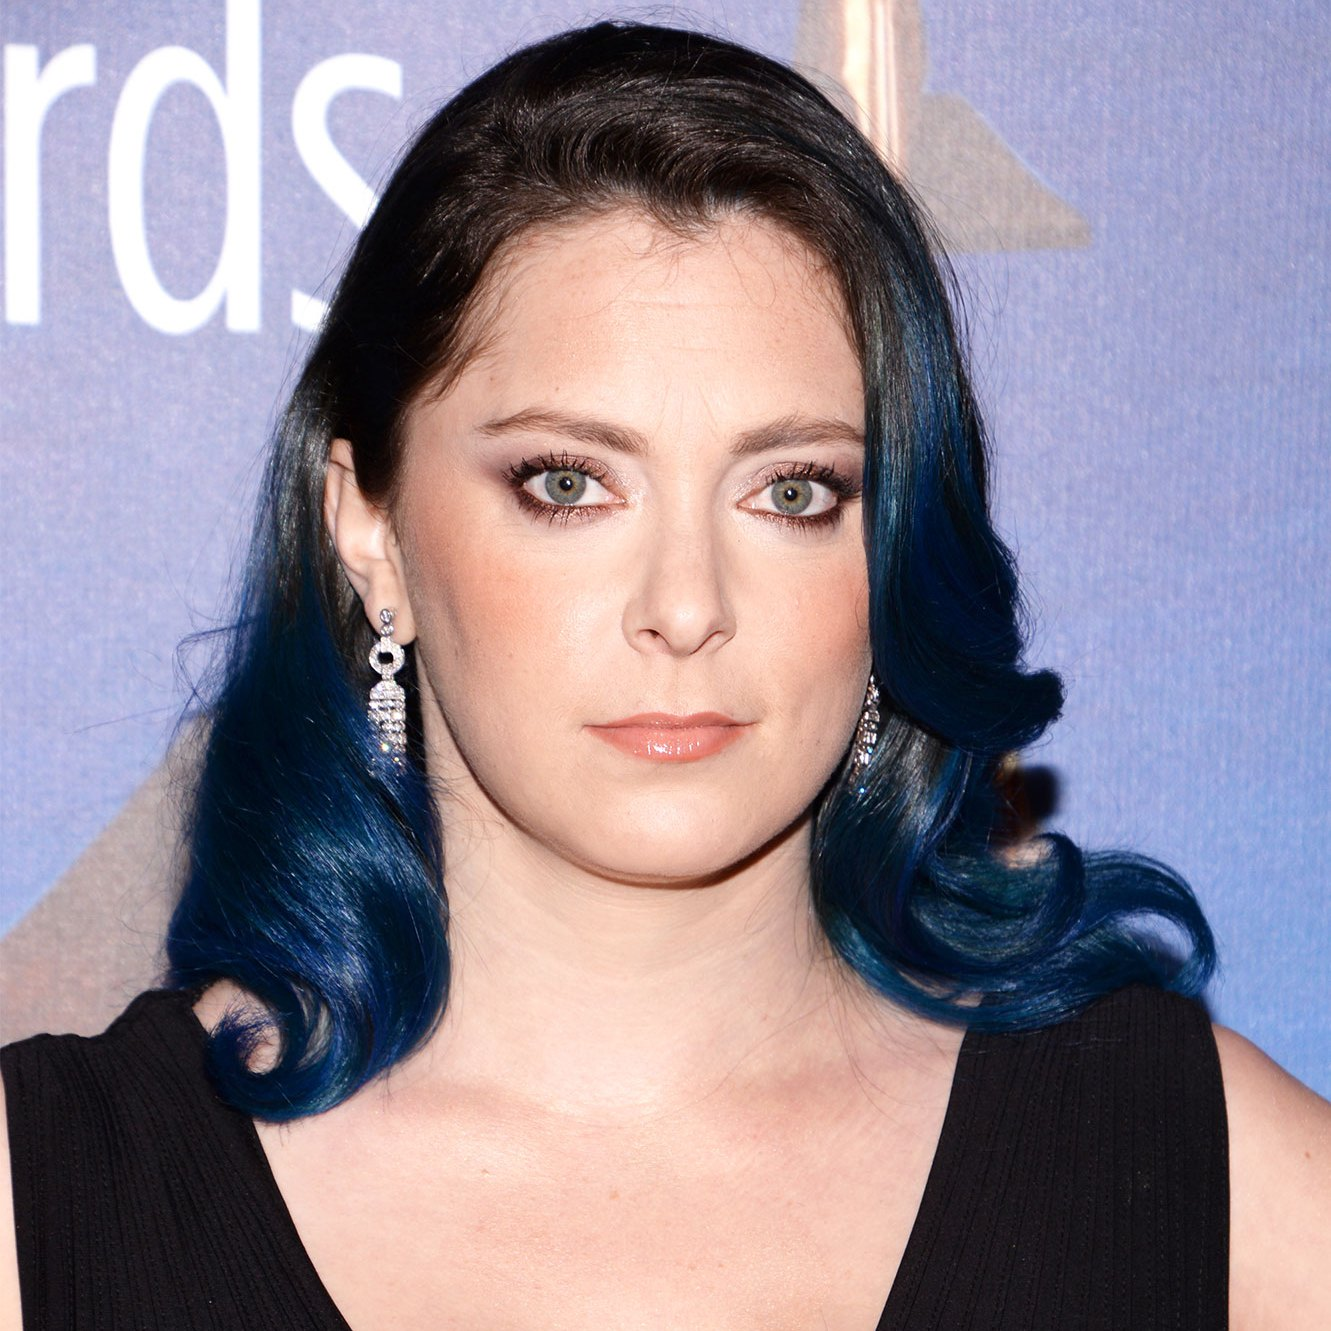 Rachel Bloom's Blue-Dipped Look Is the Latest Star Hair Change-Up